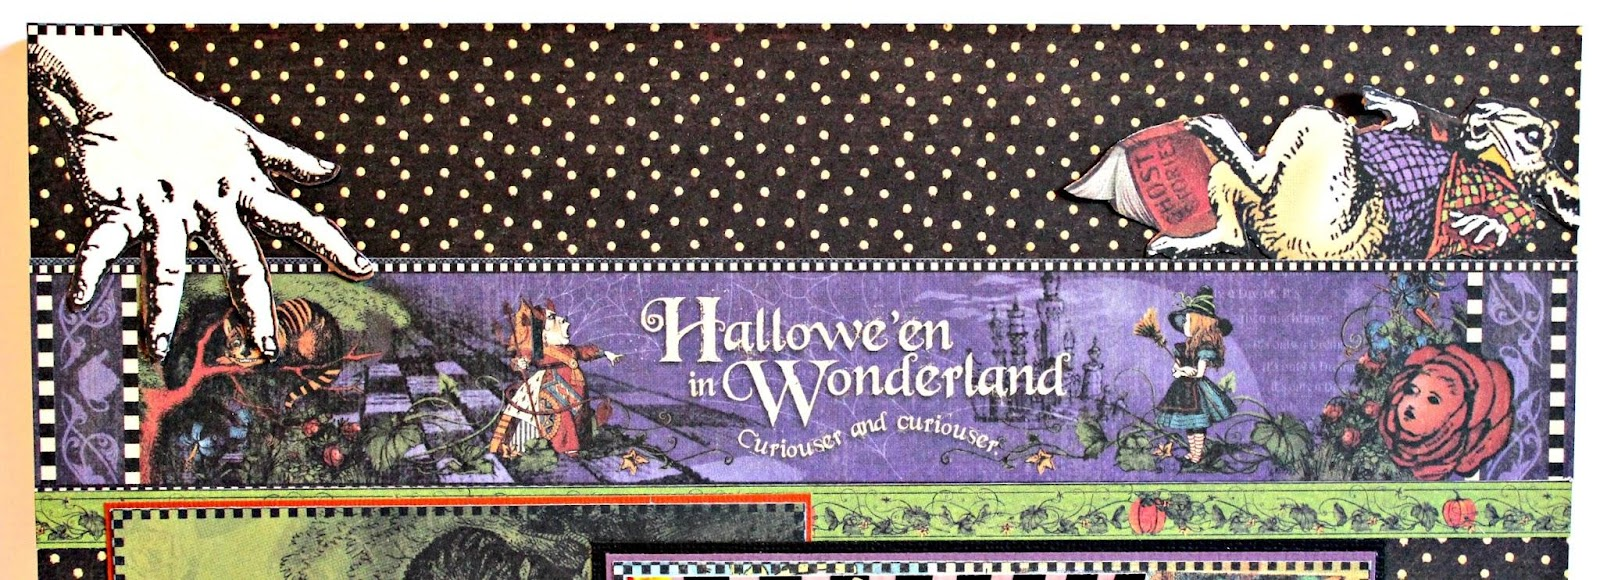 2017 G45 Brand Ambassadors- 2017 Pam Bray  - June 2017 - Halloween in Wonderland Layout - Photo 8_7498.JPG